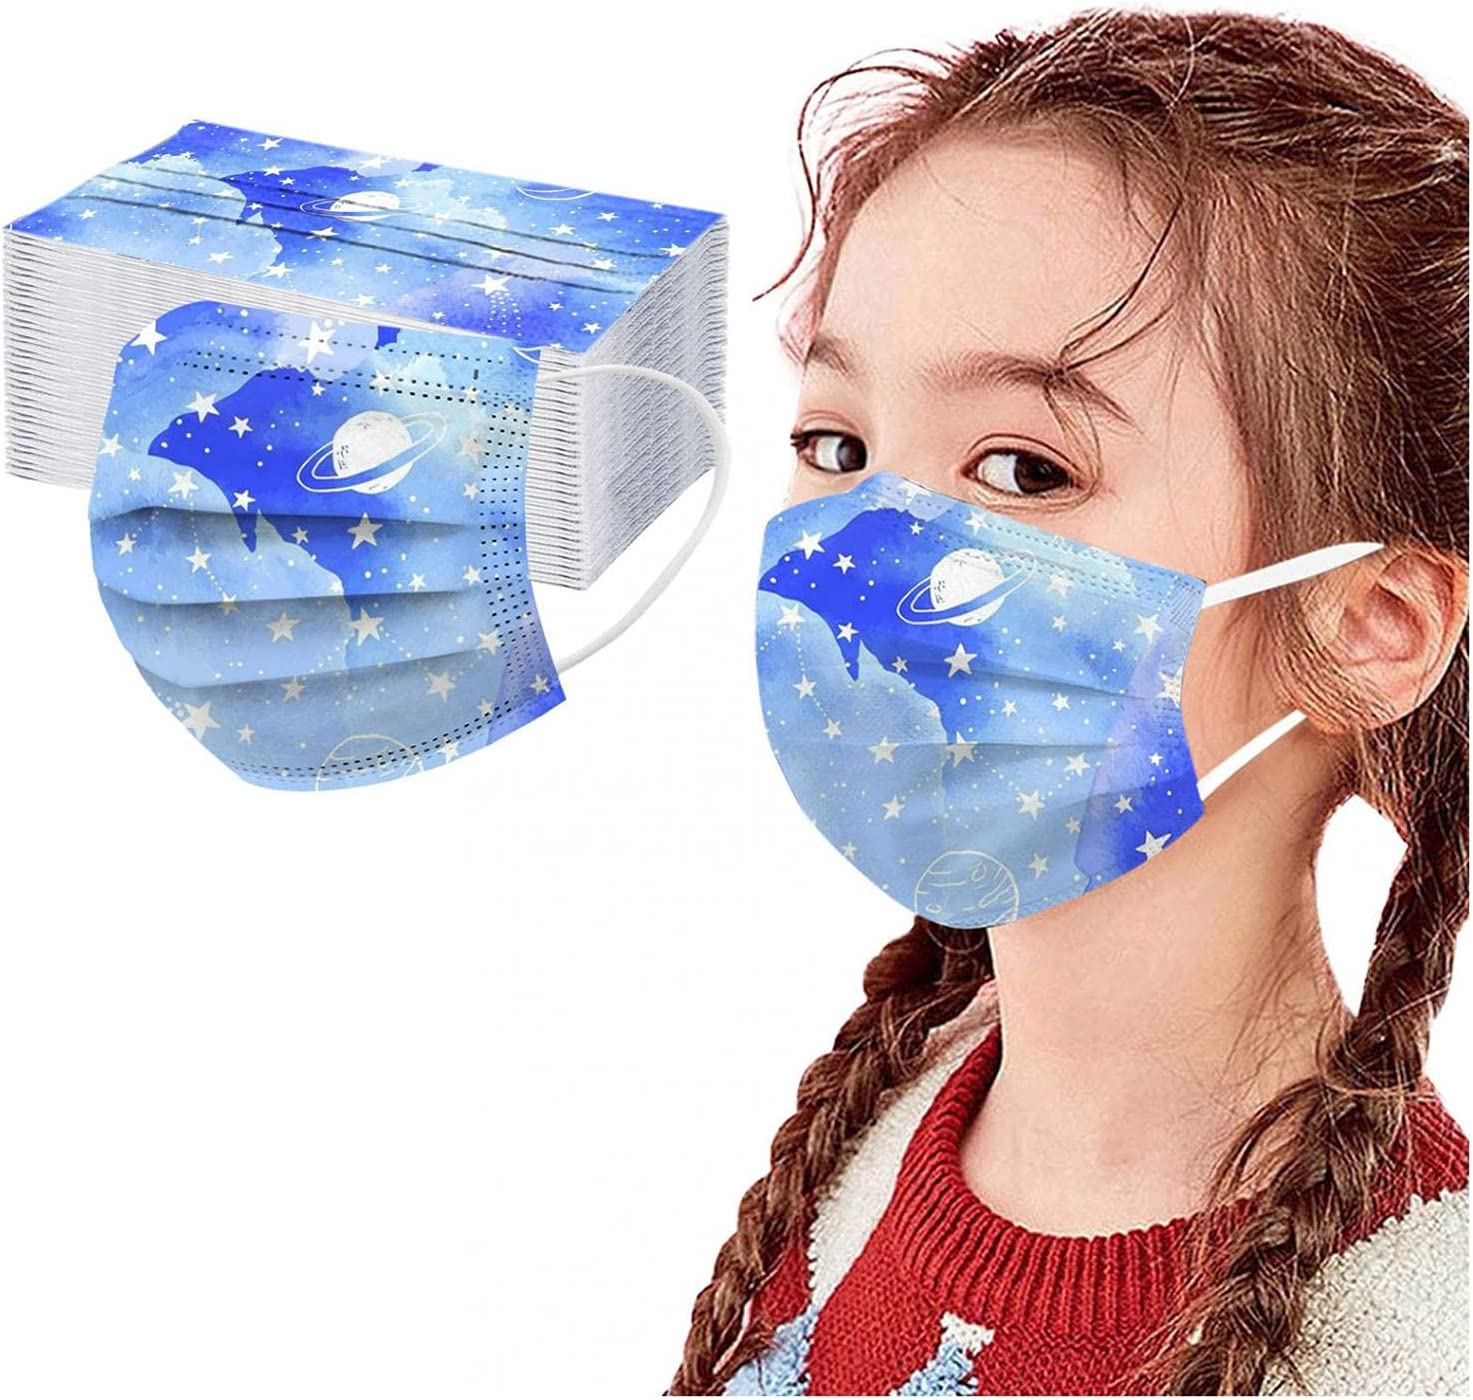 1 year warranty SUMSAYEI 50PCs Children's Disposable_Face_Cover 3-ply Safety_No 5 ☆ very popular